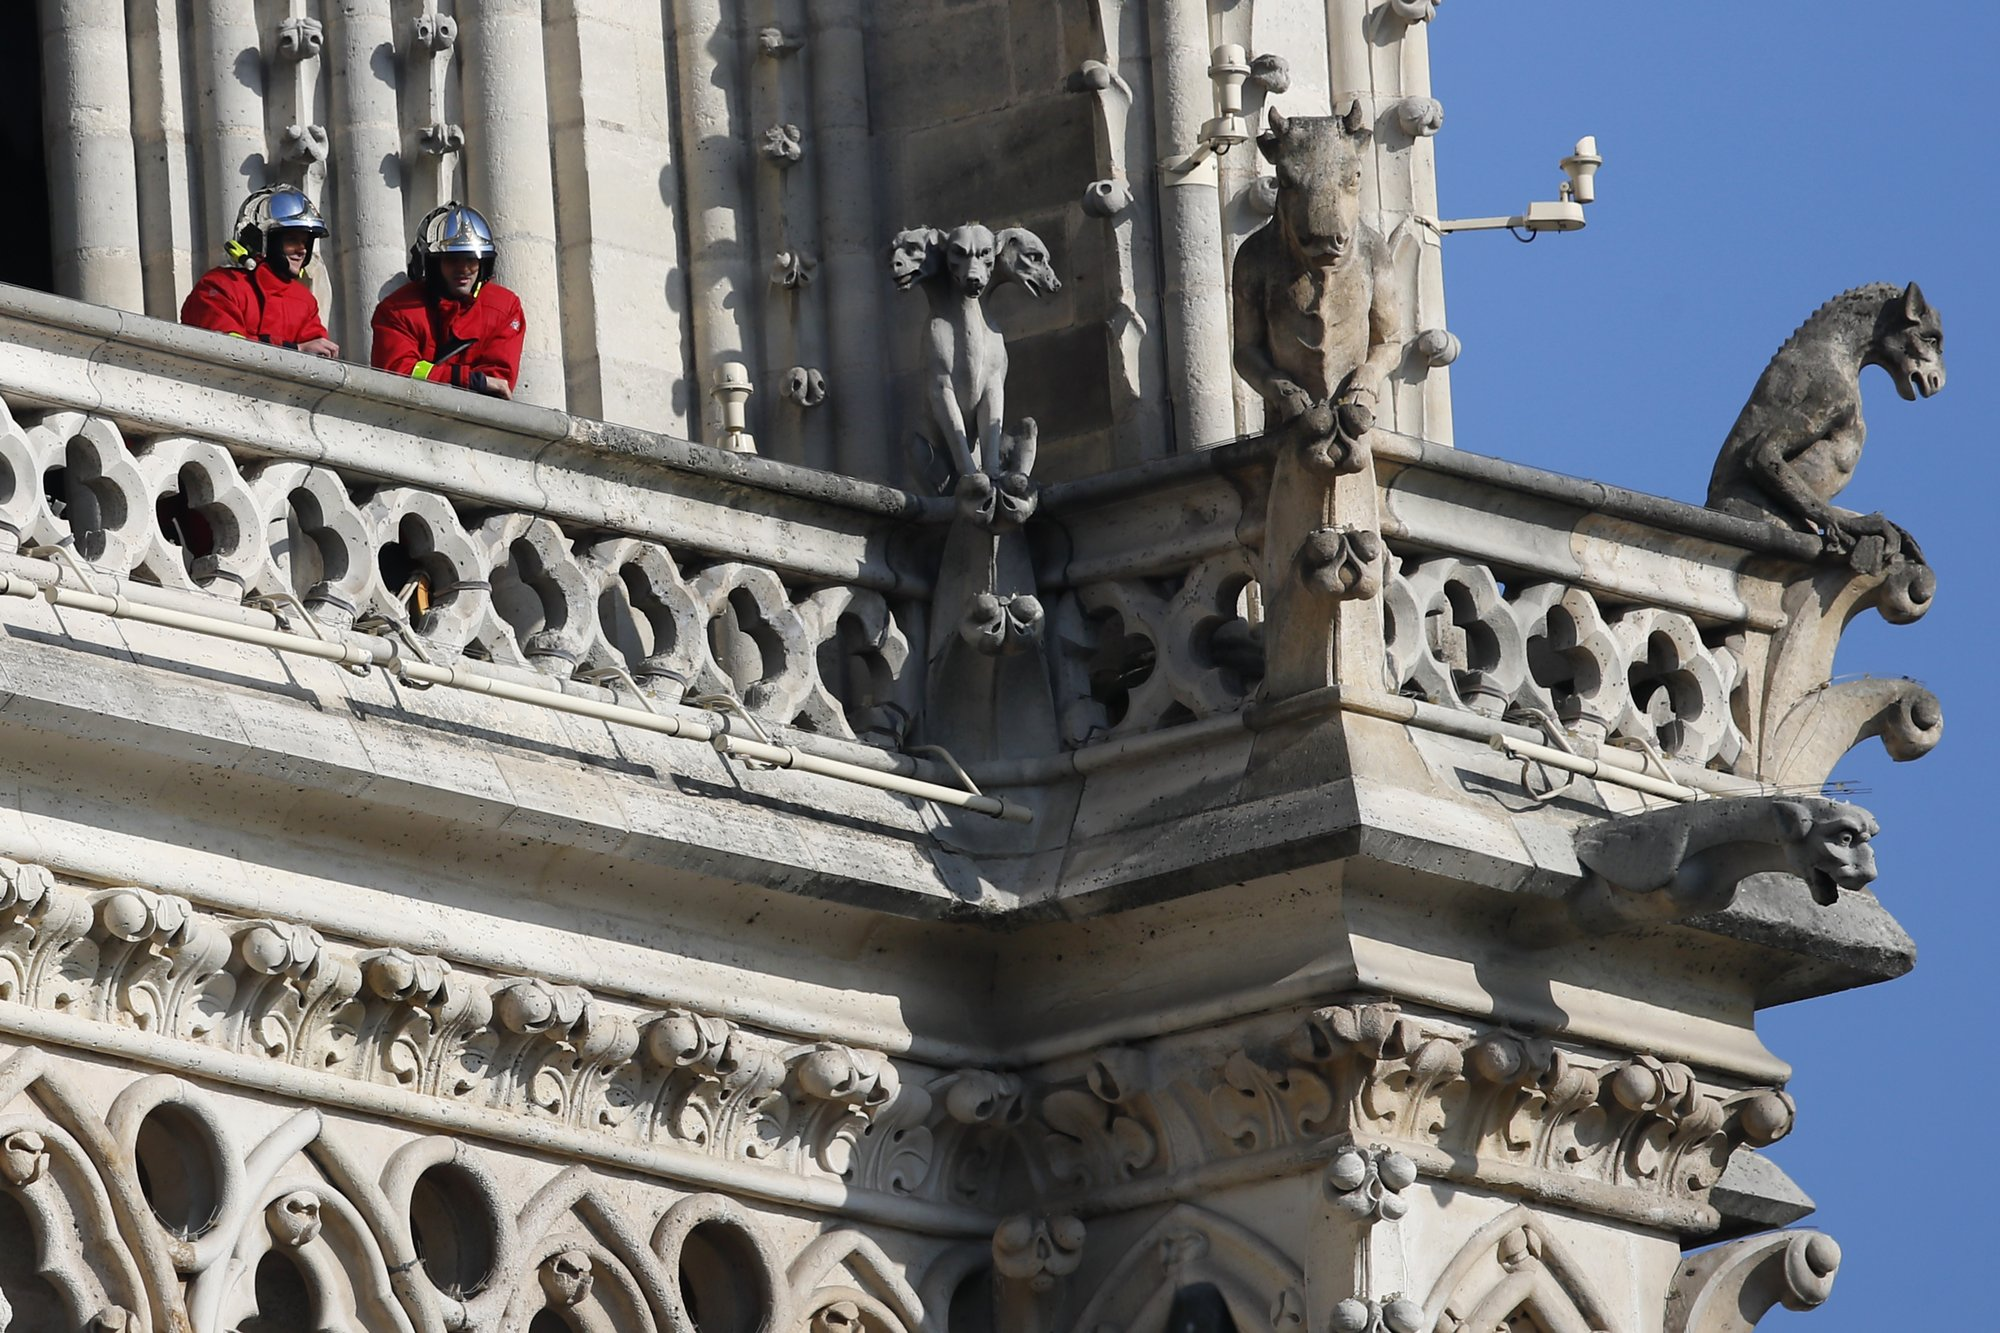 Firefighters at Notre Dame Cathedral, April 17, 2019